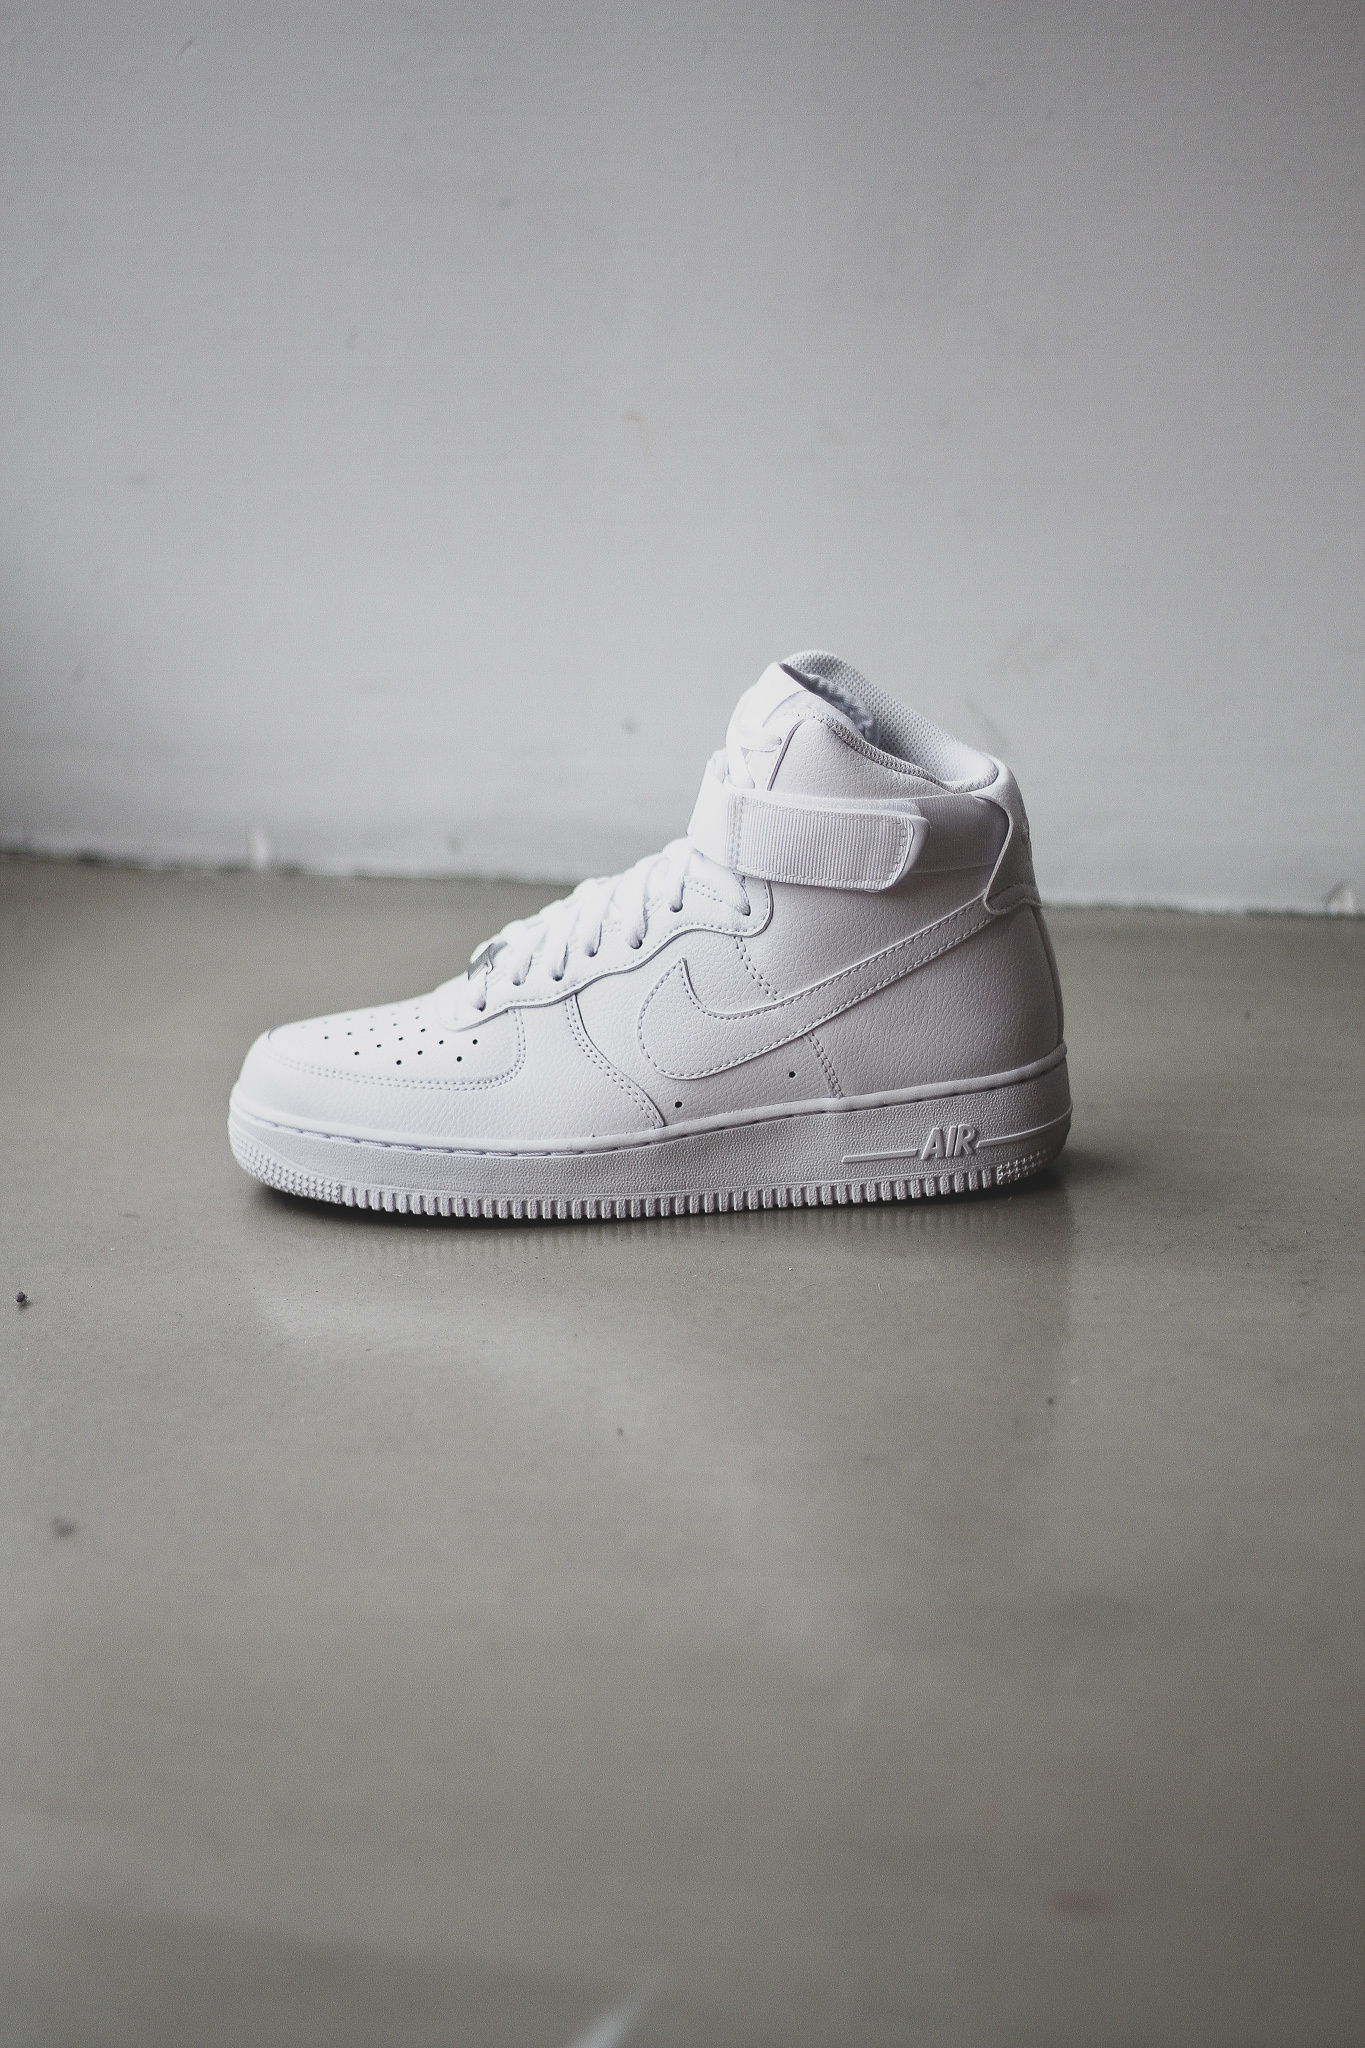 designer fashion 7ee91 488b4 AIR FORCE 1 HIGH - WHITE - Sneaker Room - Jersey City